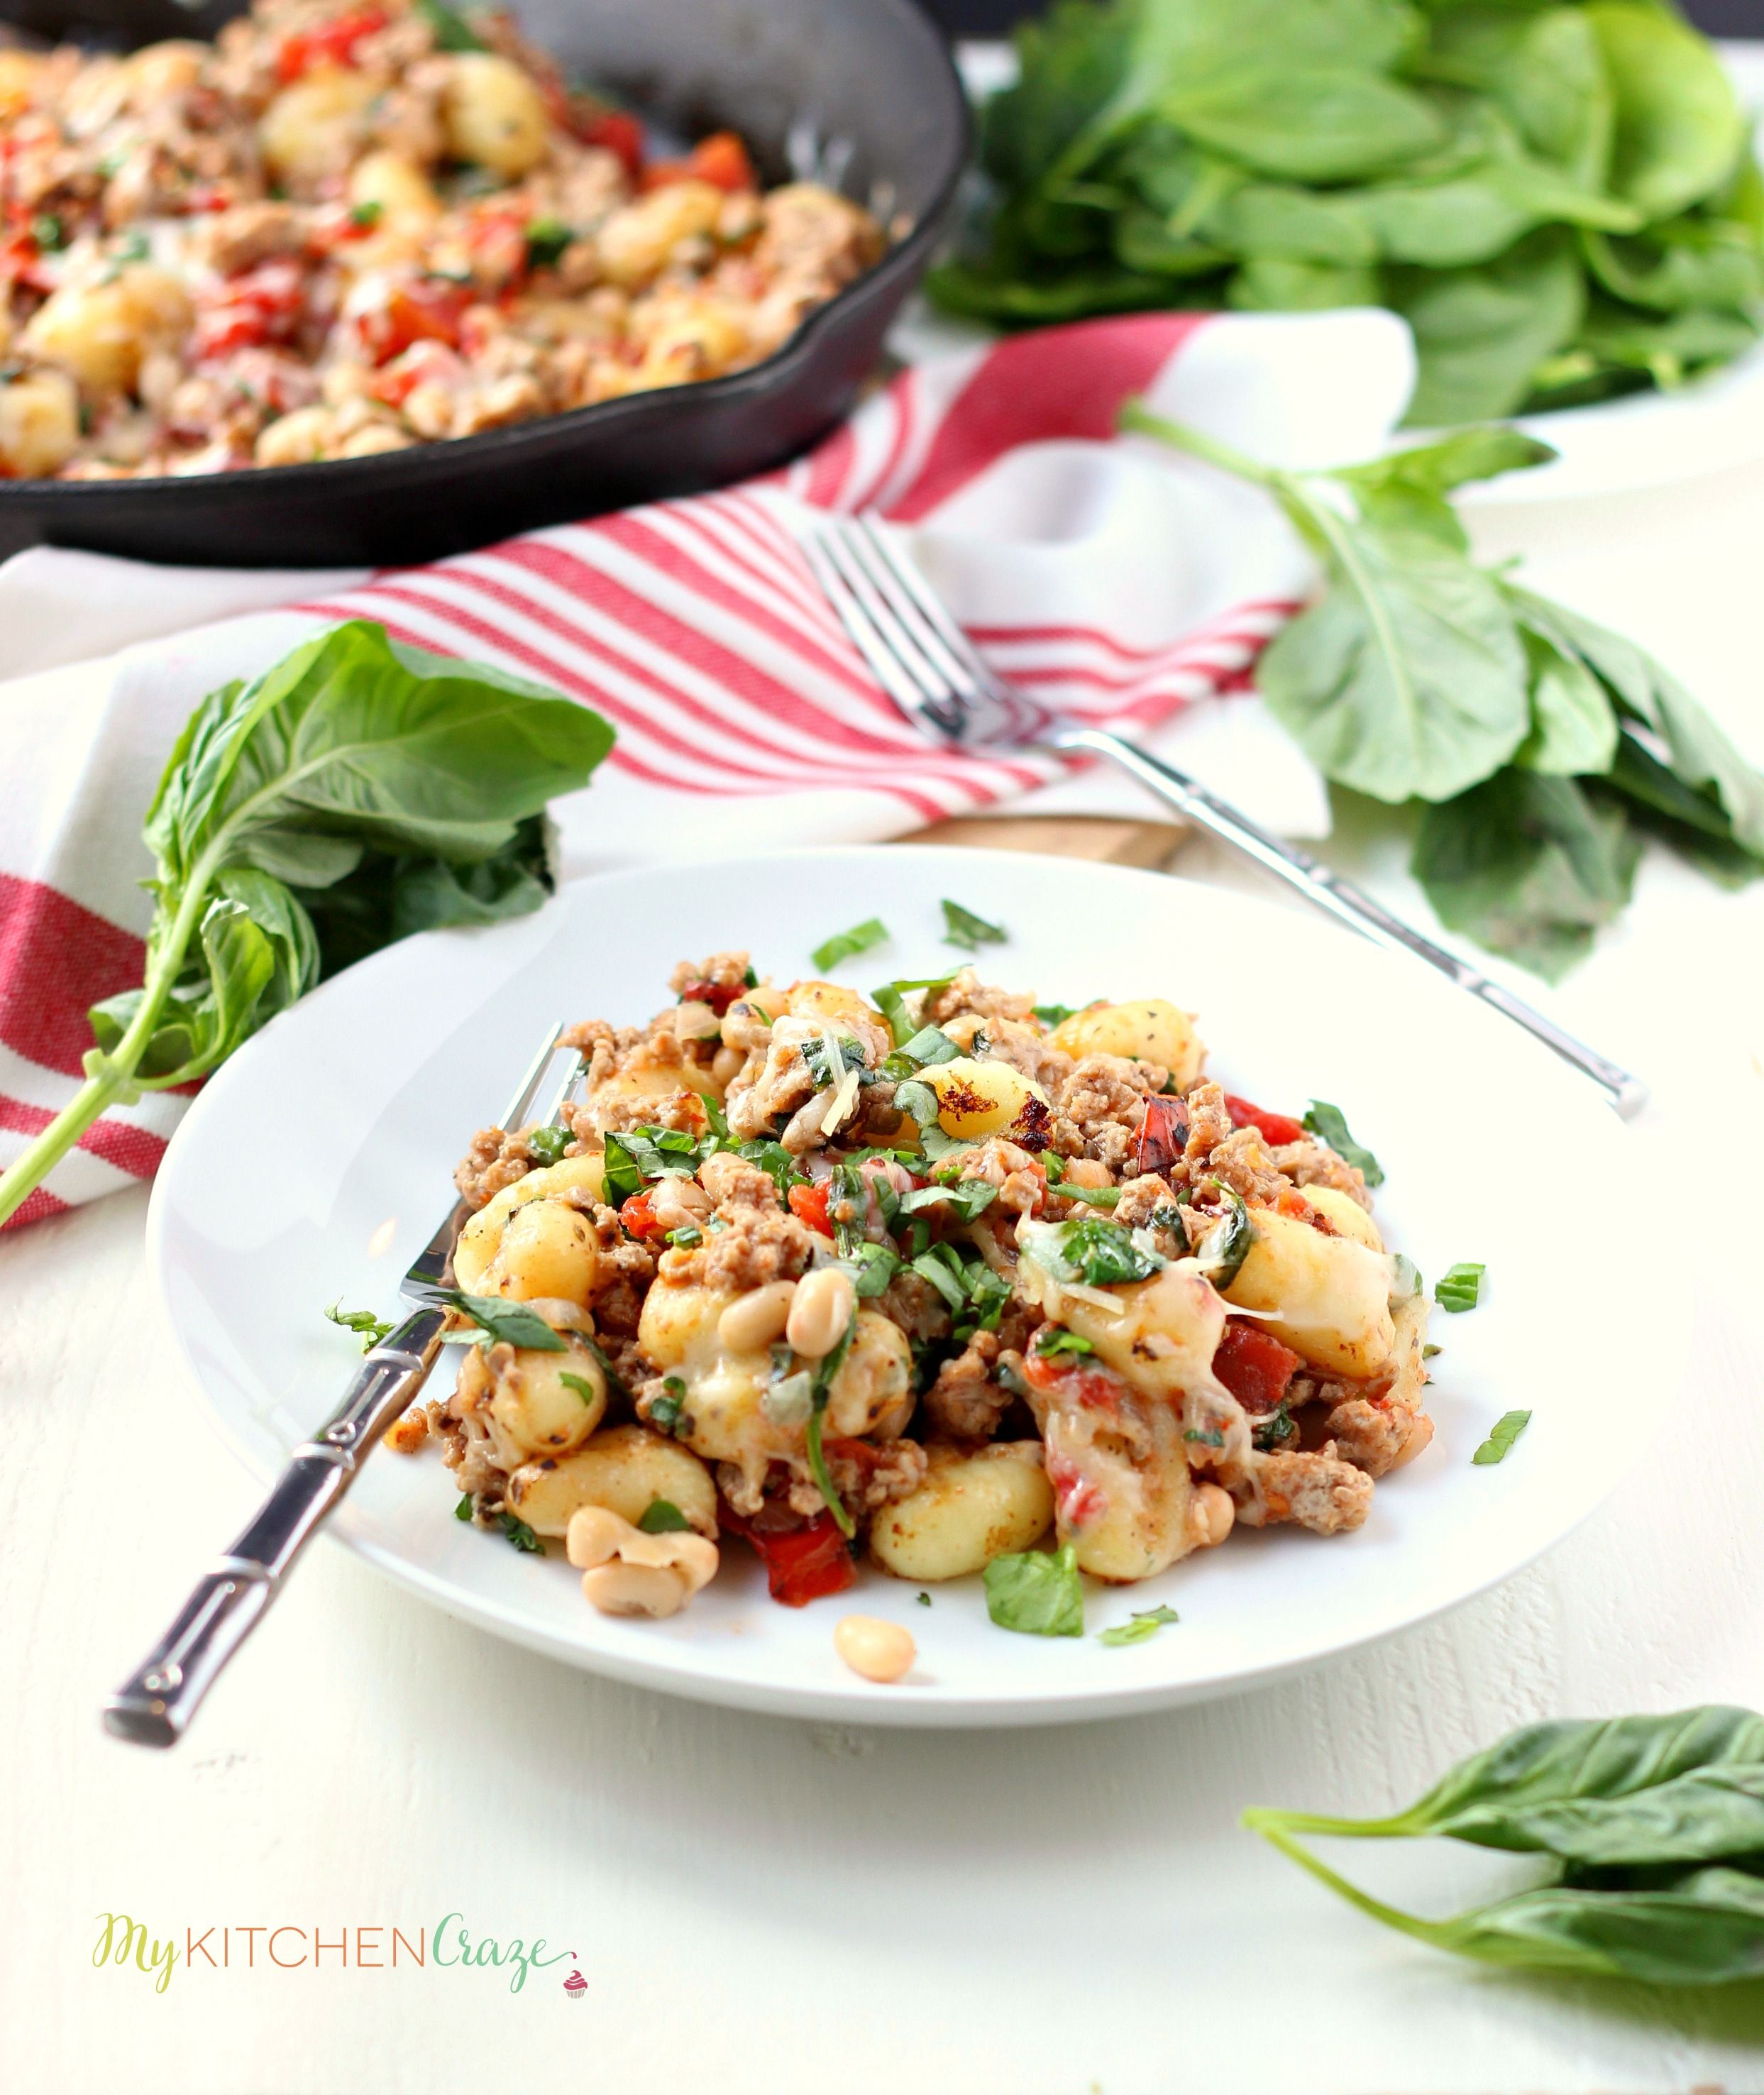 Gnocchi With White Beans Recipe: Gnocchi With Turkey And White Beans Is A No Fuss Recipe